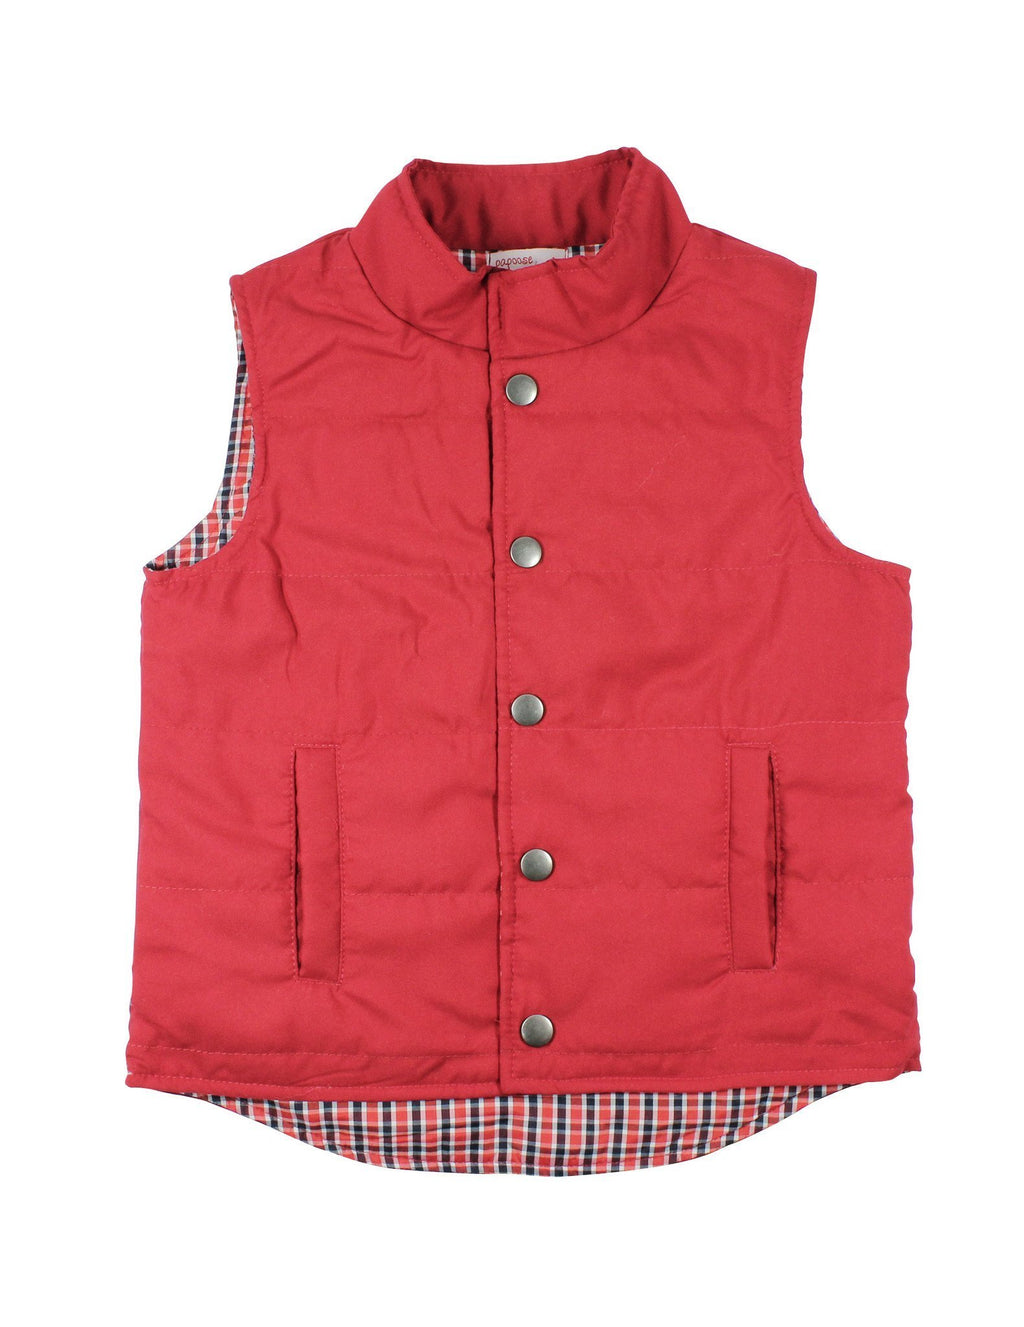 Papoose AW16 Red Vest